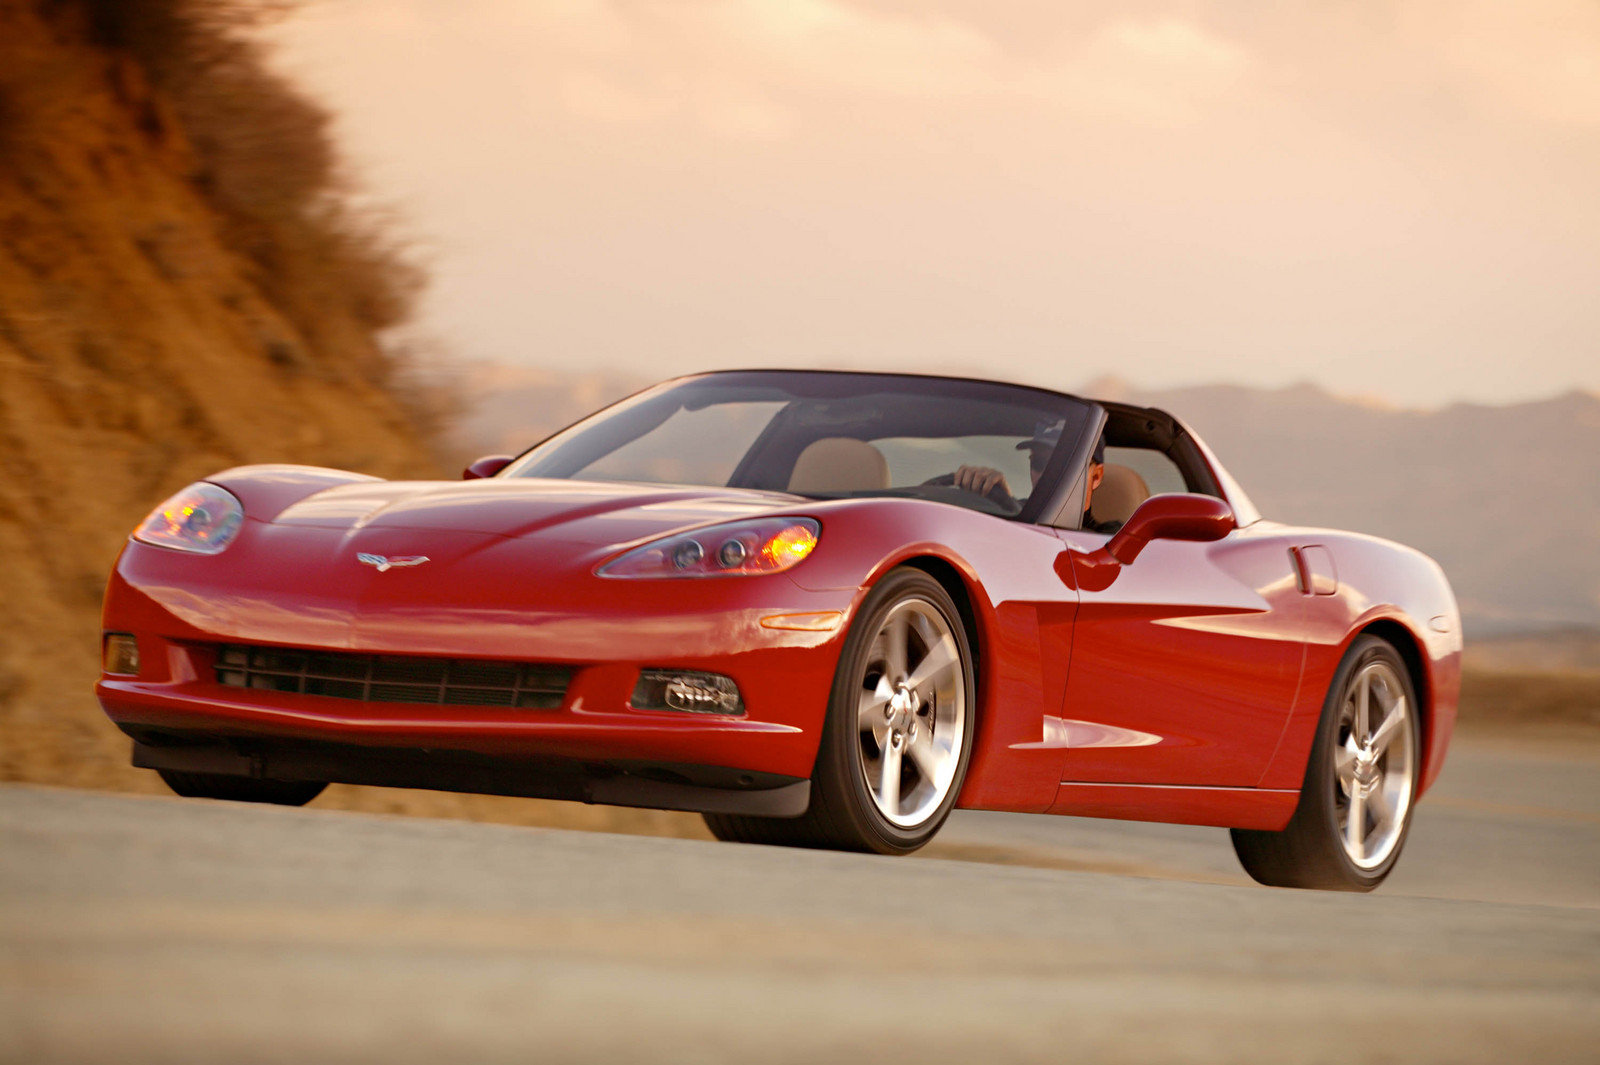 2007 Chevrolet Corvette | Top Speed